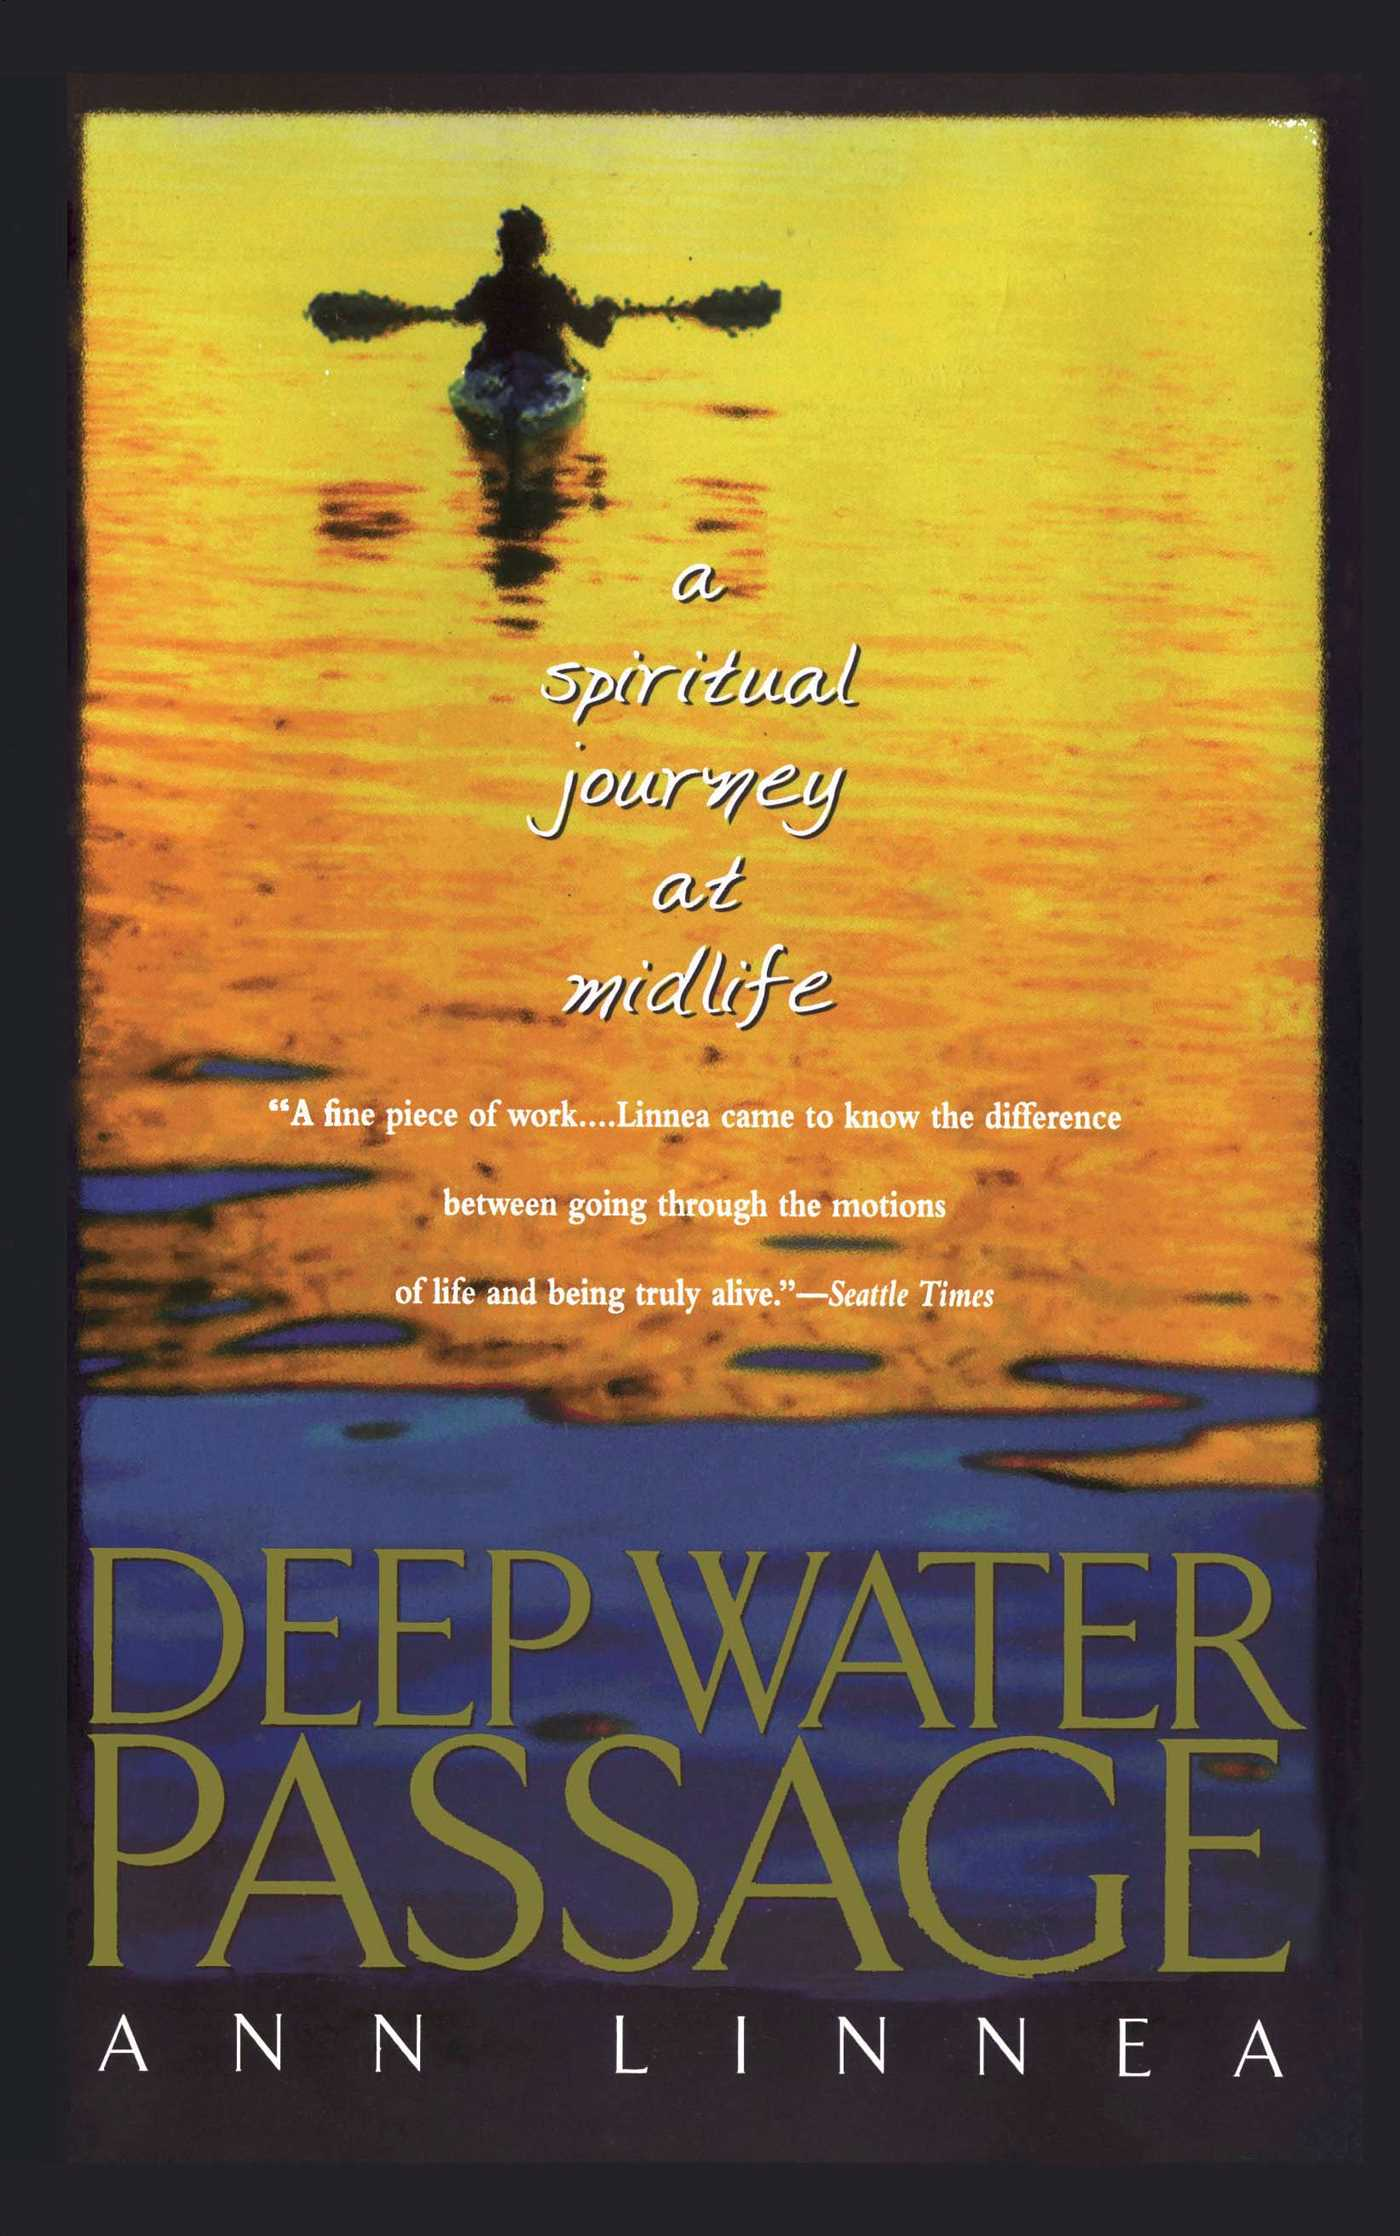 Deep-water-passage-9780671002824_hr